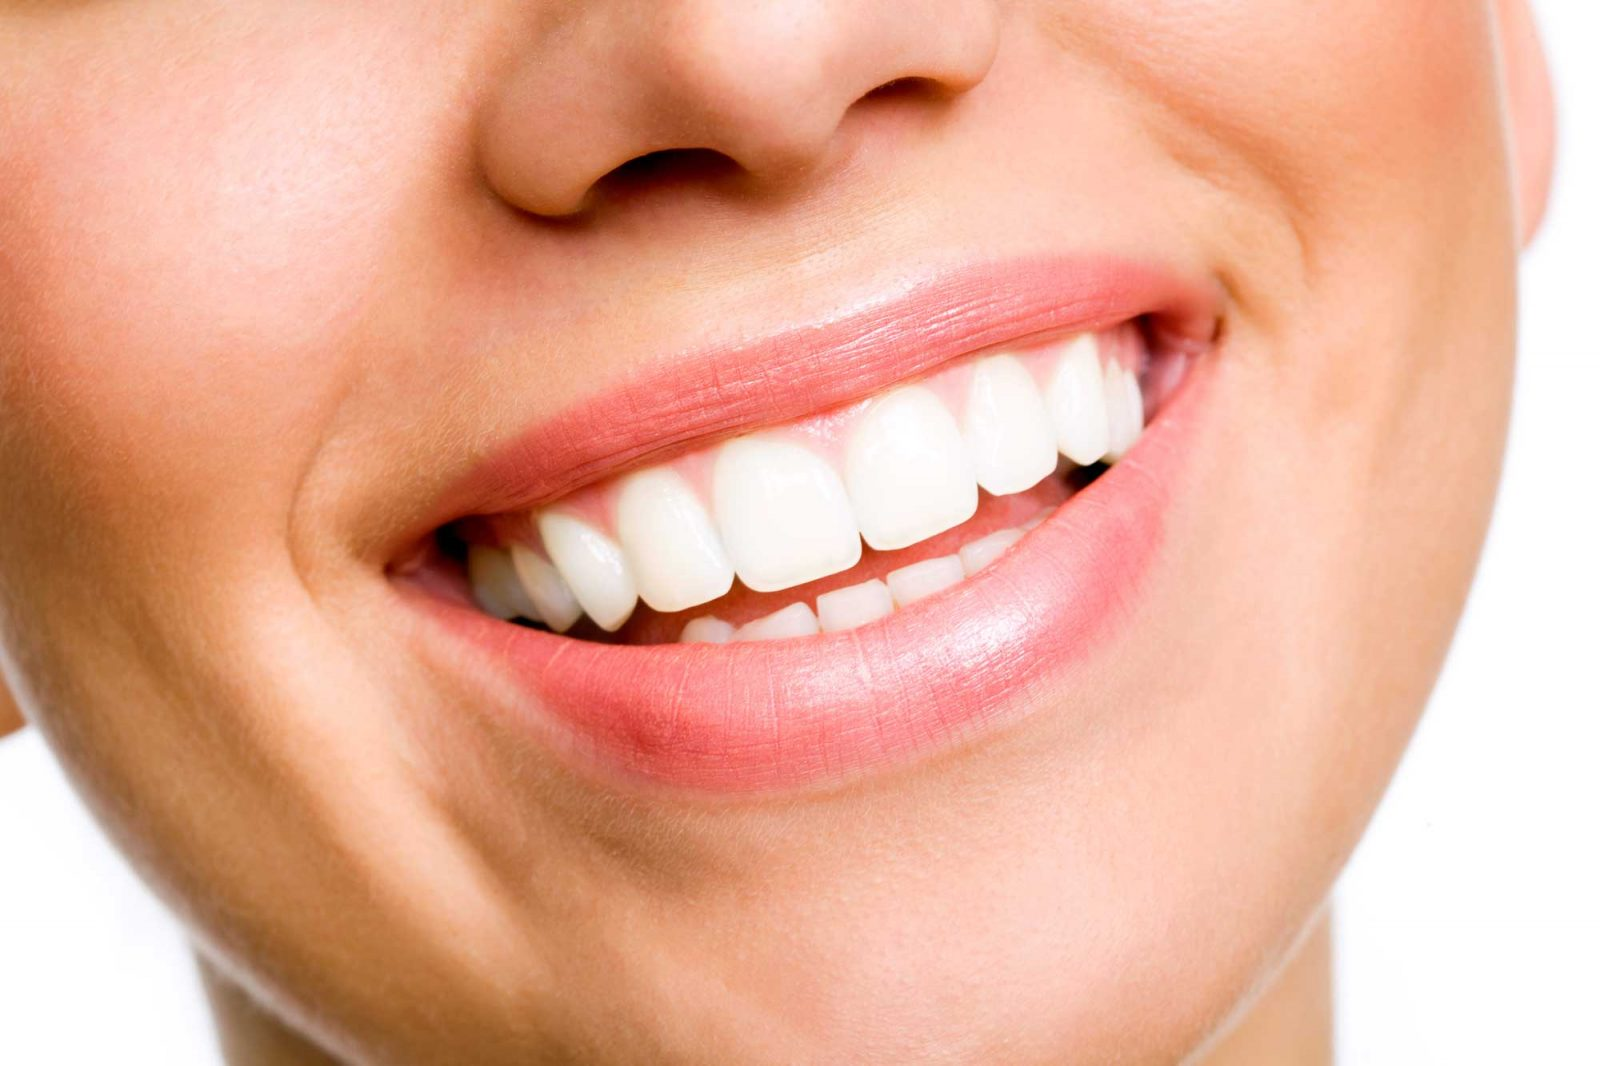 carillas de composite tenerife -clinica dental tenerife - prodental